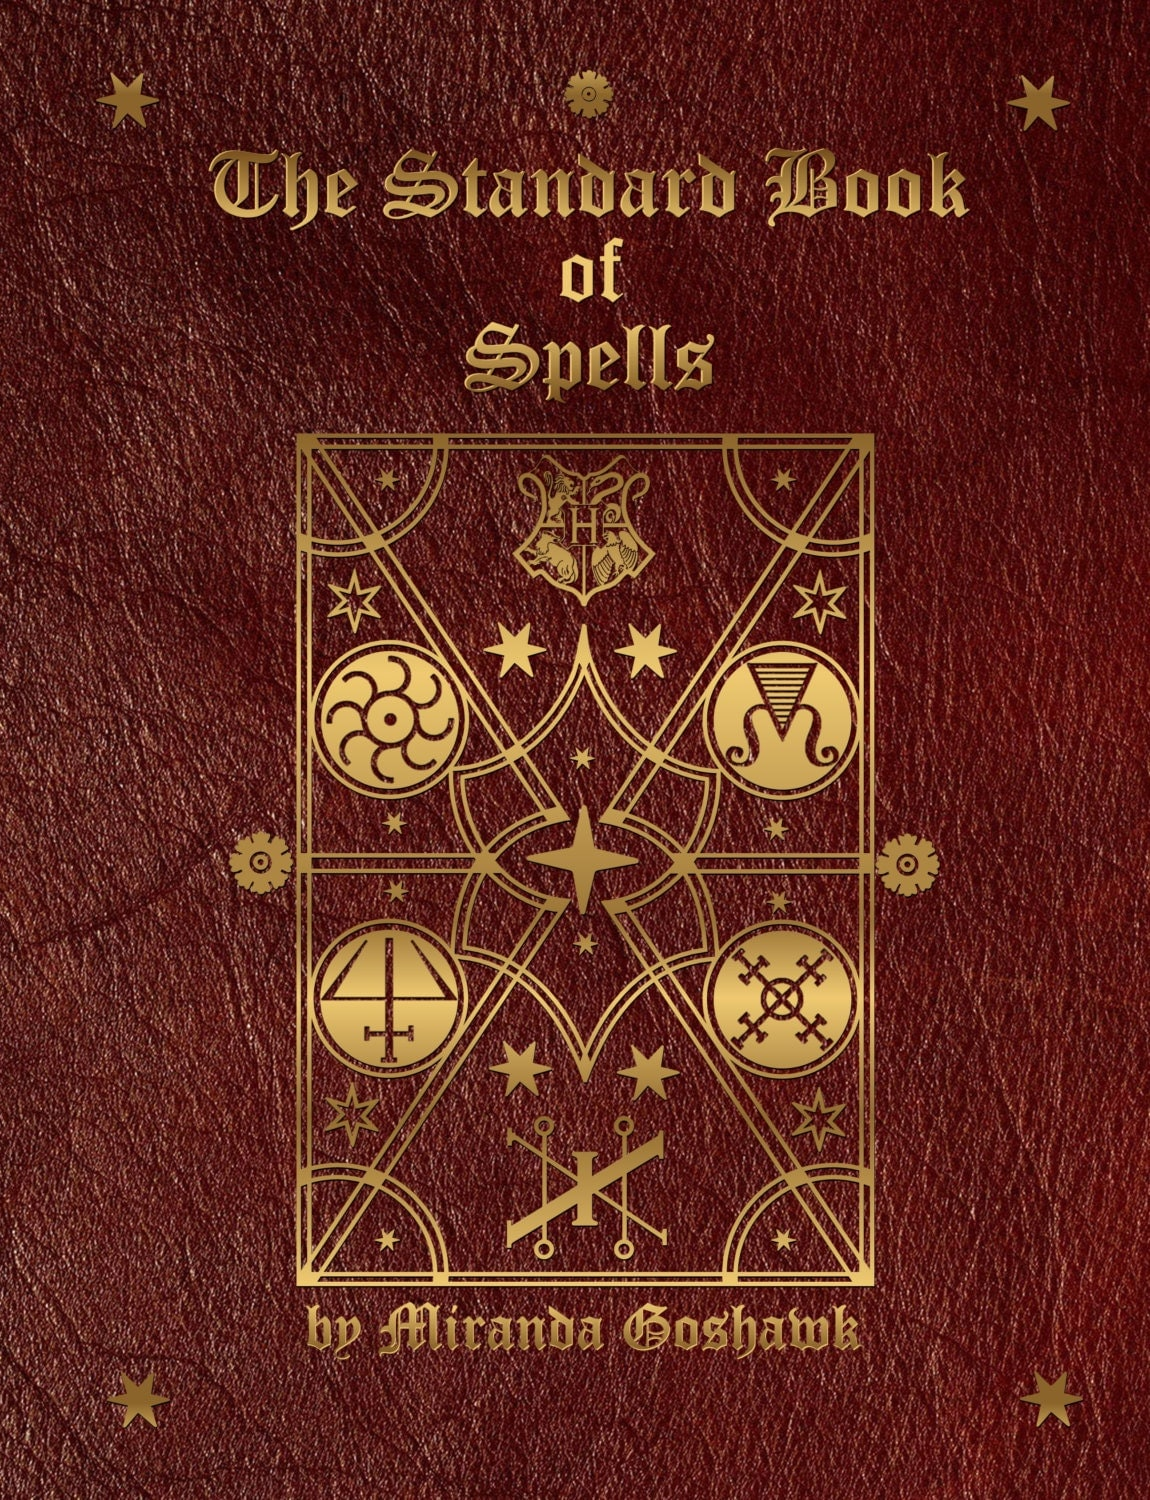 Spell Book Cover Printable ~ Harry potter spell book deals on blocks